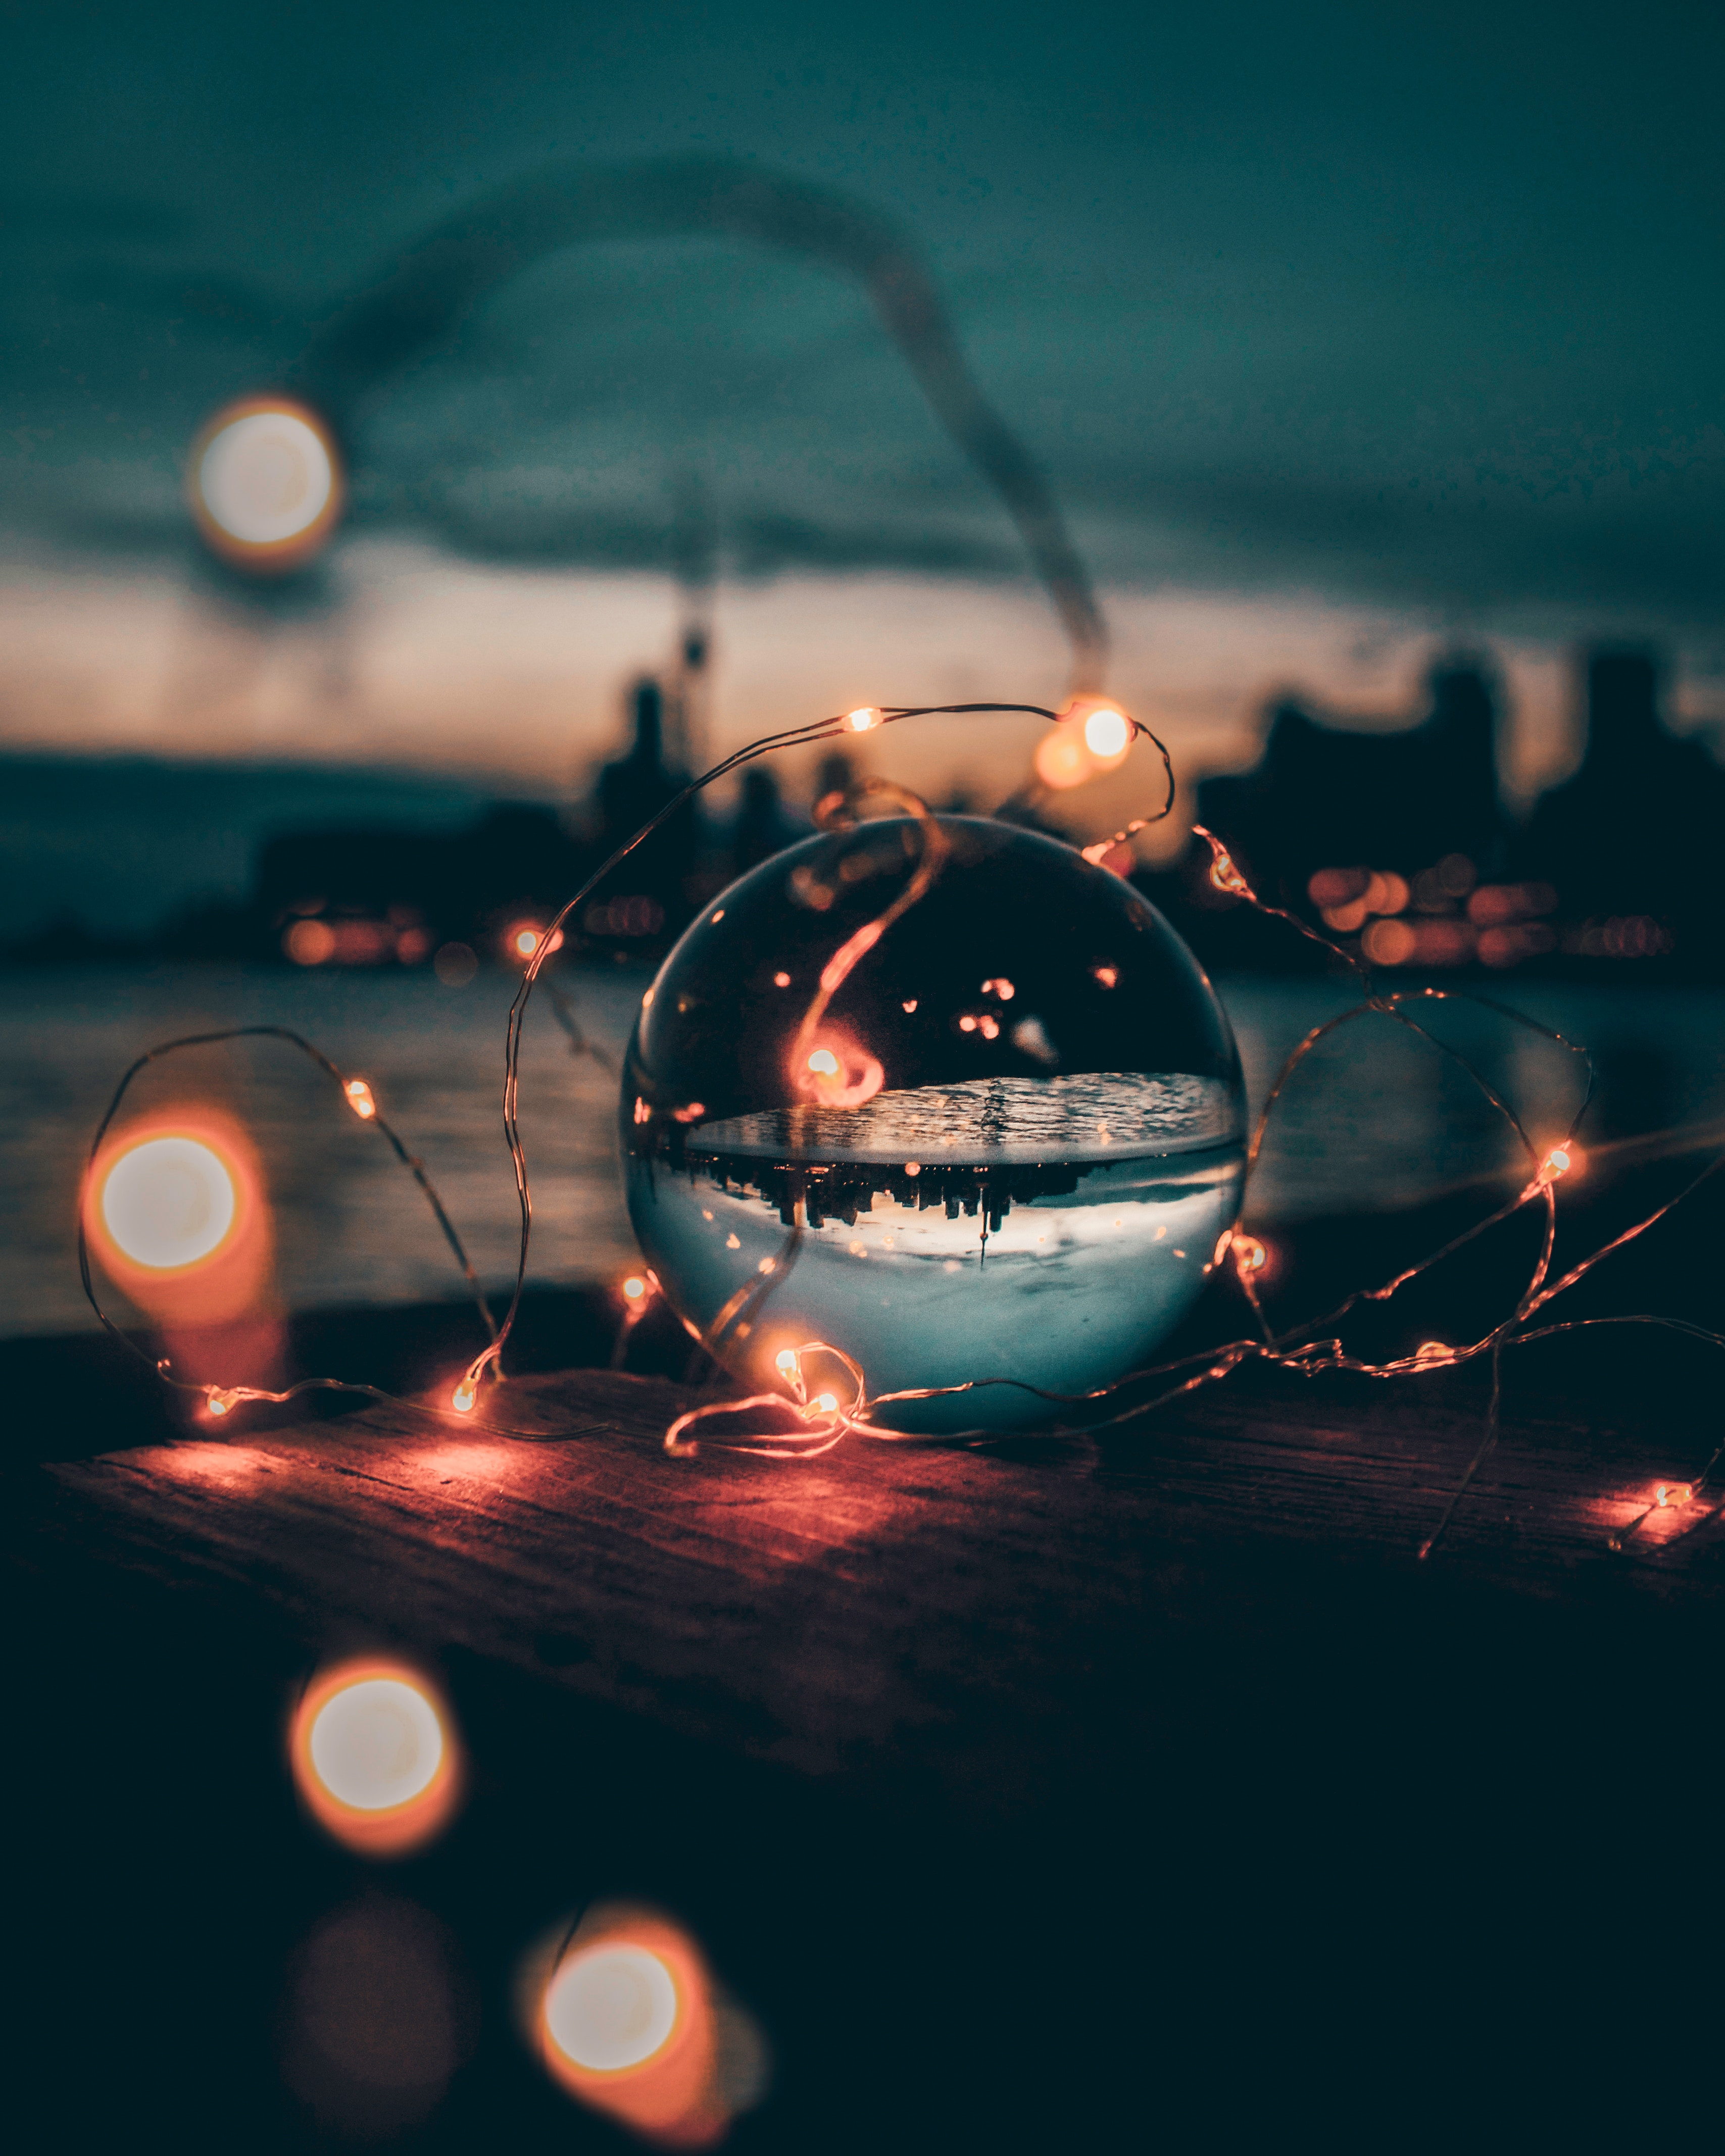 68734 download wallpaper Glass, Macro, Sunset, Transparent, Ball, Garland, Garlands screensavers and pictures for free